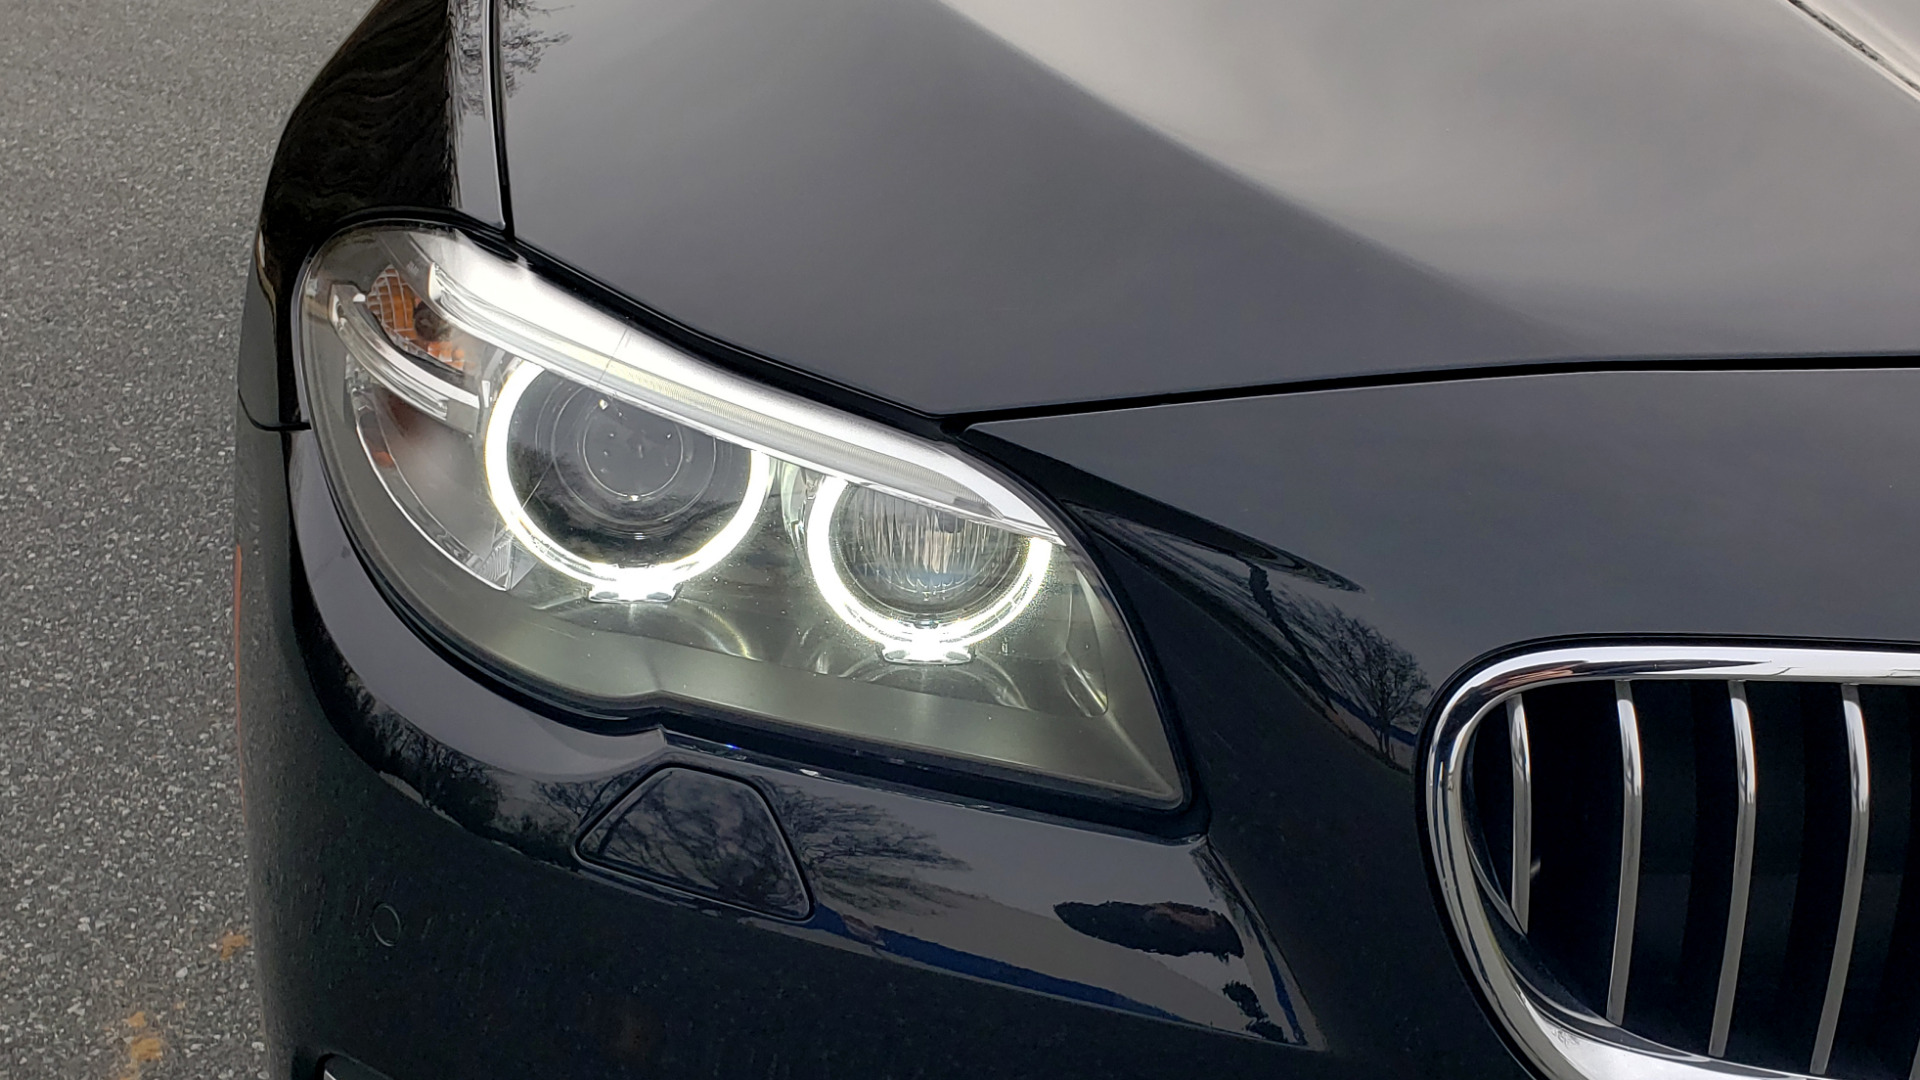 Used 2016 BMW 5 SERIES 528i XDRIVE / PREM PKG / DRVR ASST PLUS / LUXURY / COLD WTHR for sale Sold at Formula Imports in Charlotte NC 28227 24